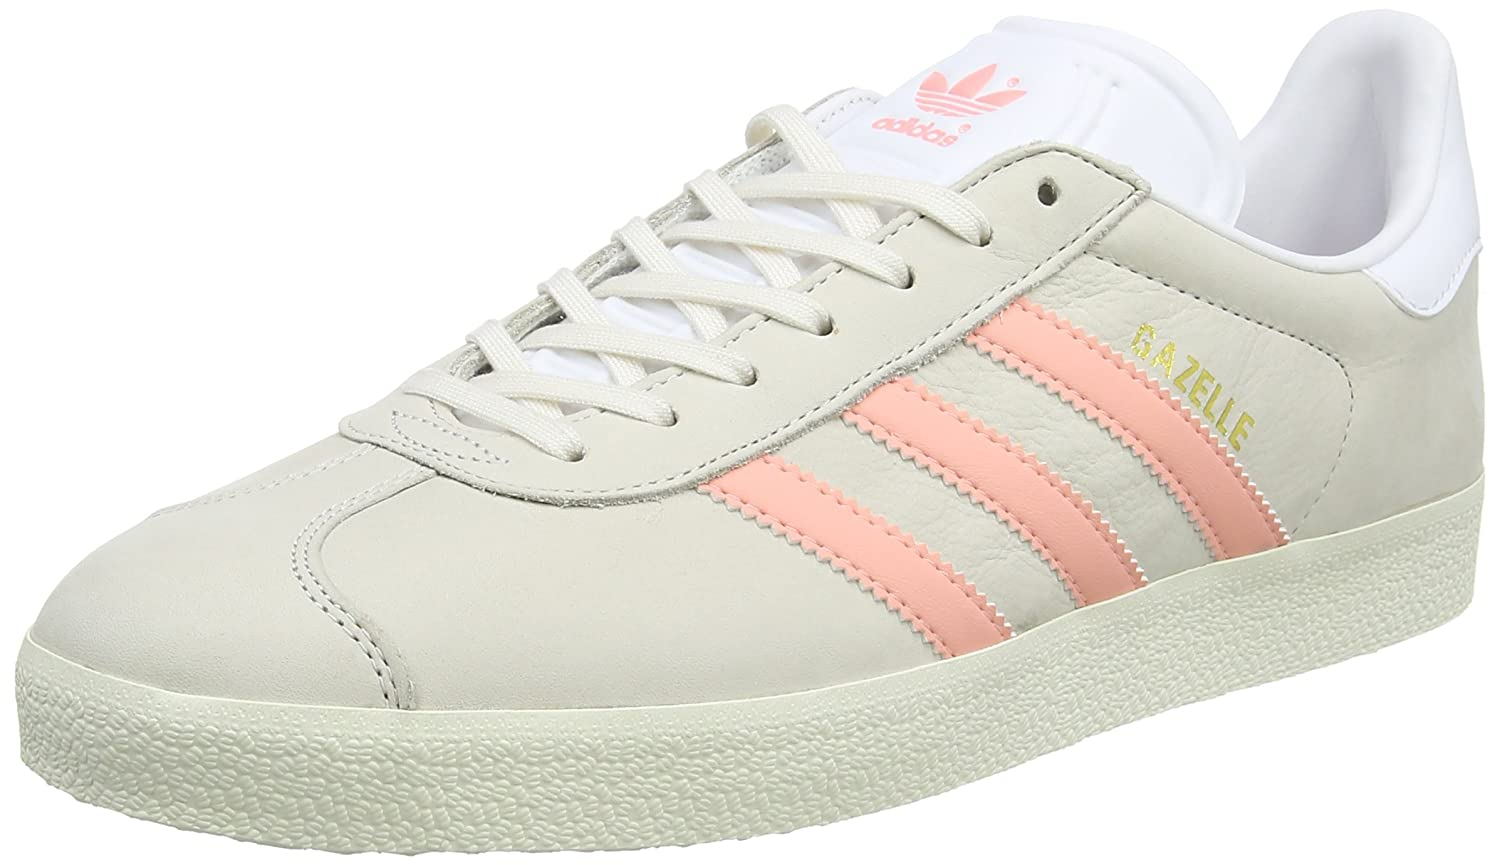 Adidas Originals Gazelle, Zapatillas de Deporte Unisex Adulto 36 2/3 EU|Varios Colores (Chalk White/Still Breeze/Footwear White)